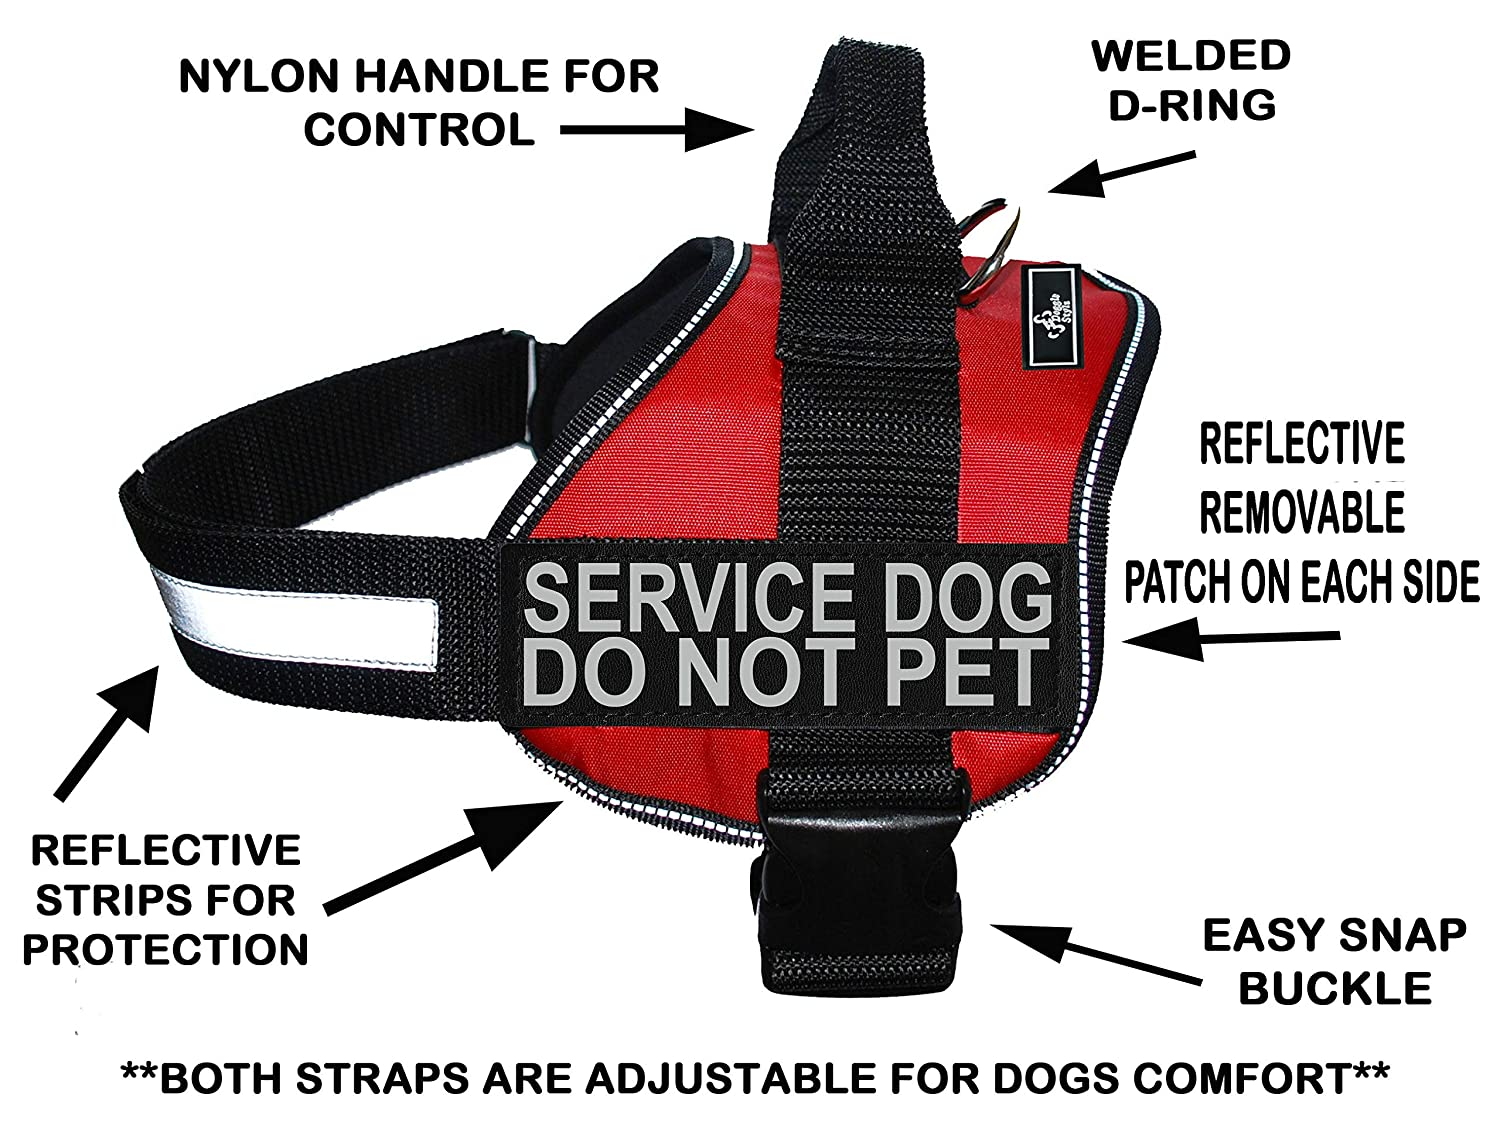 Red Girth 12-16\ Red Girth 12-16\ Doggie Stylz Service Dog Harness Vest Comes with 2 Reflective Service Dog DO NOT PET Patches. Please Measure Dog Before Ordering (Girth 12-16 , Red)